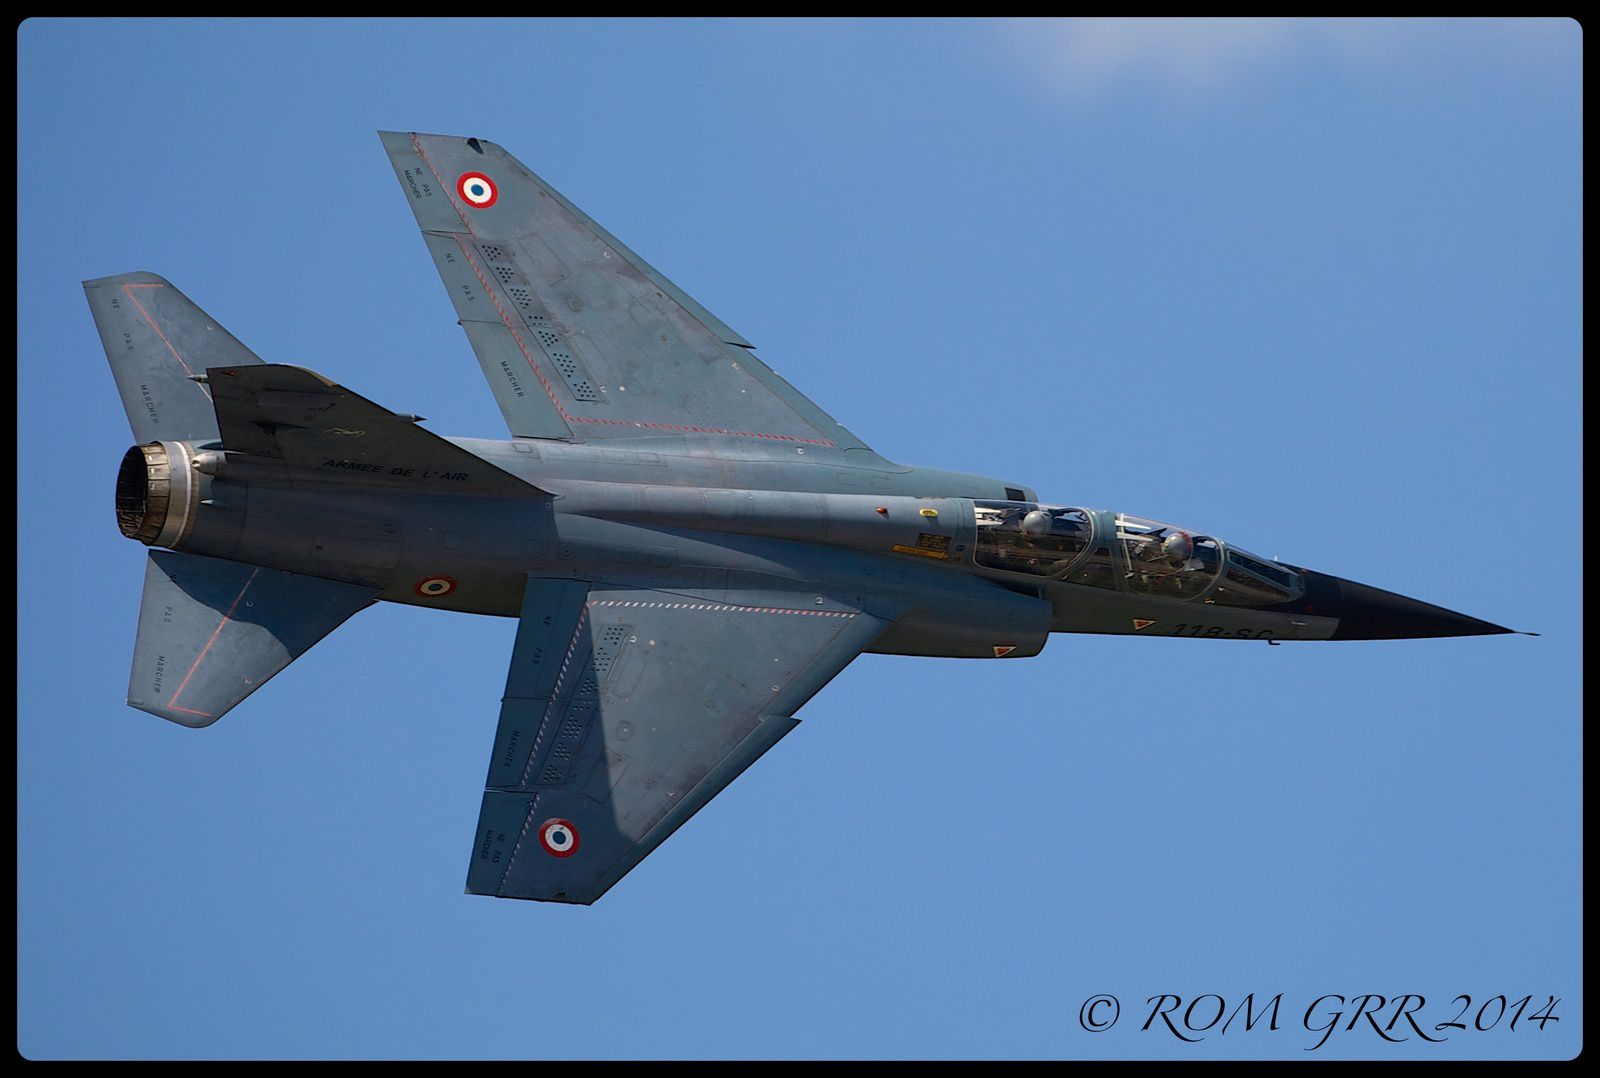 PHOTOS - C'était le Mirage F1. . .